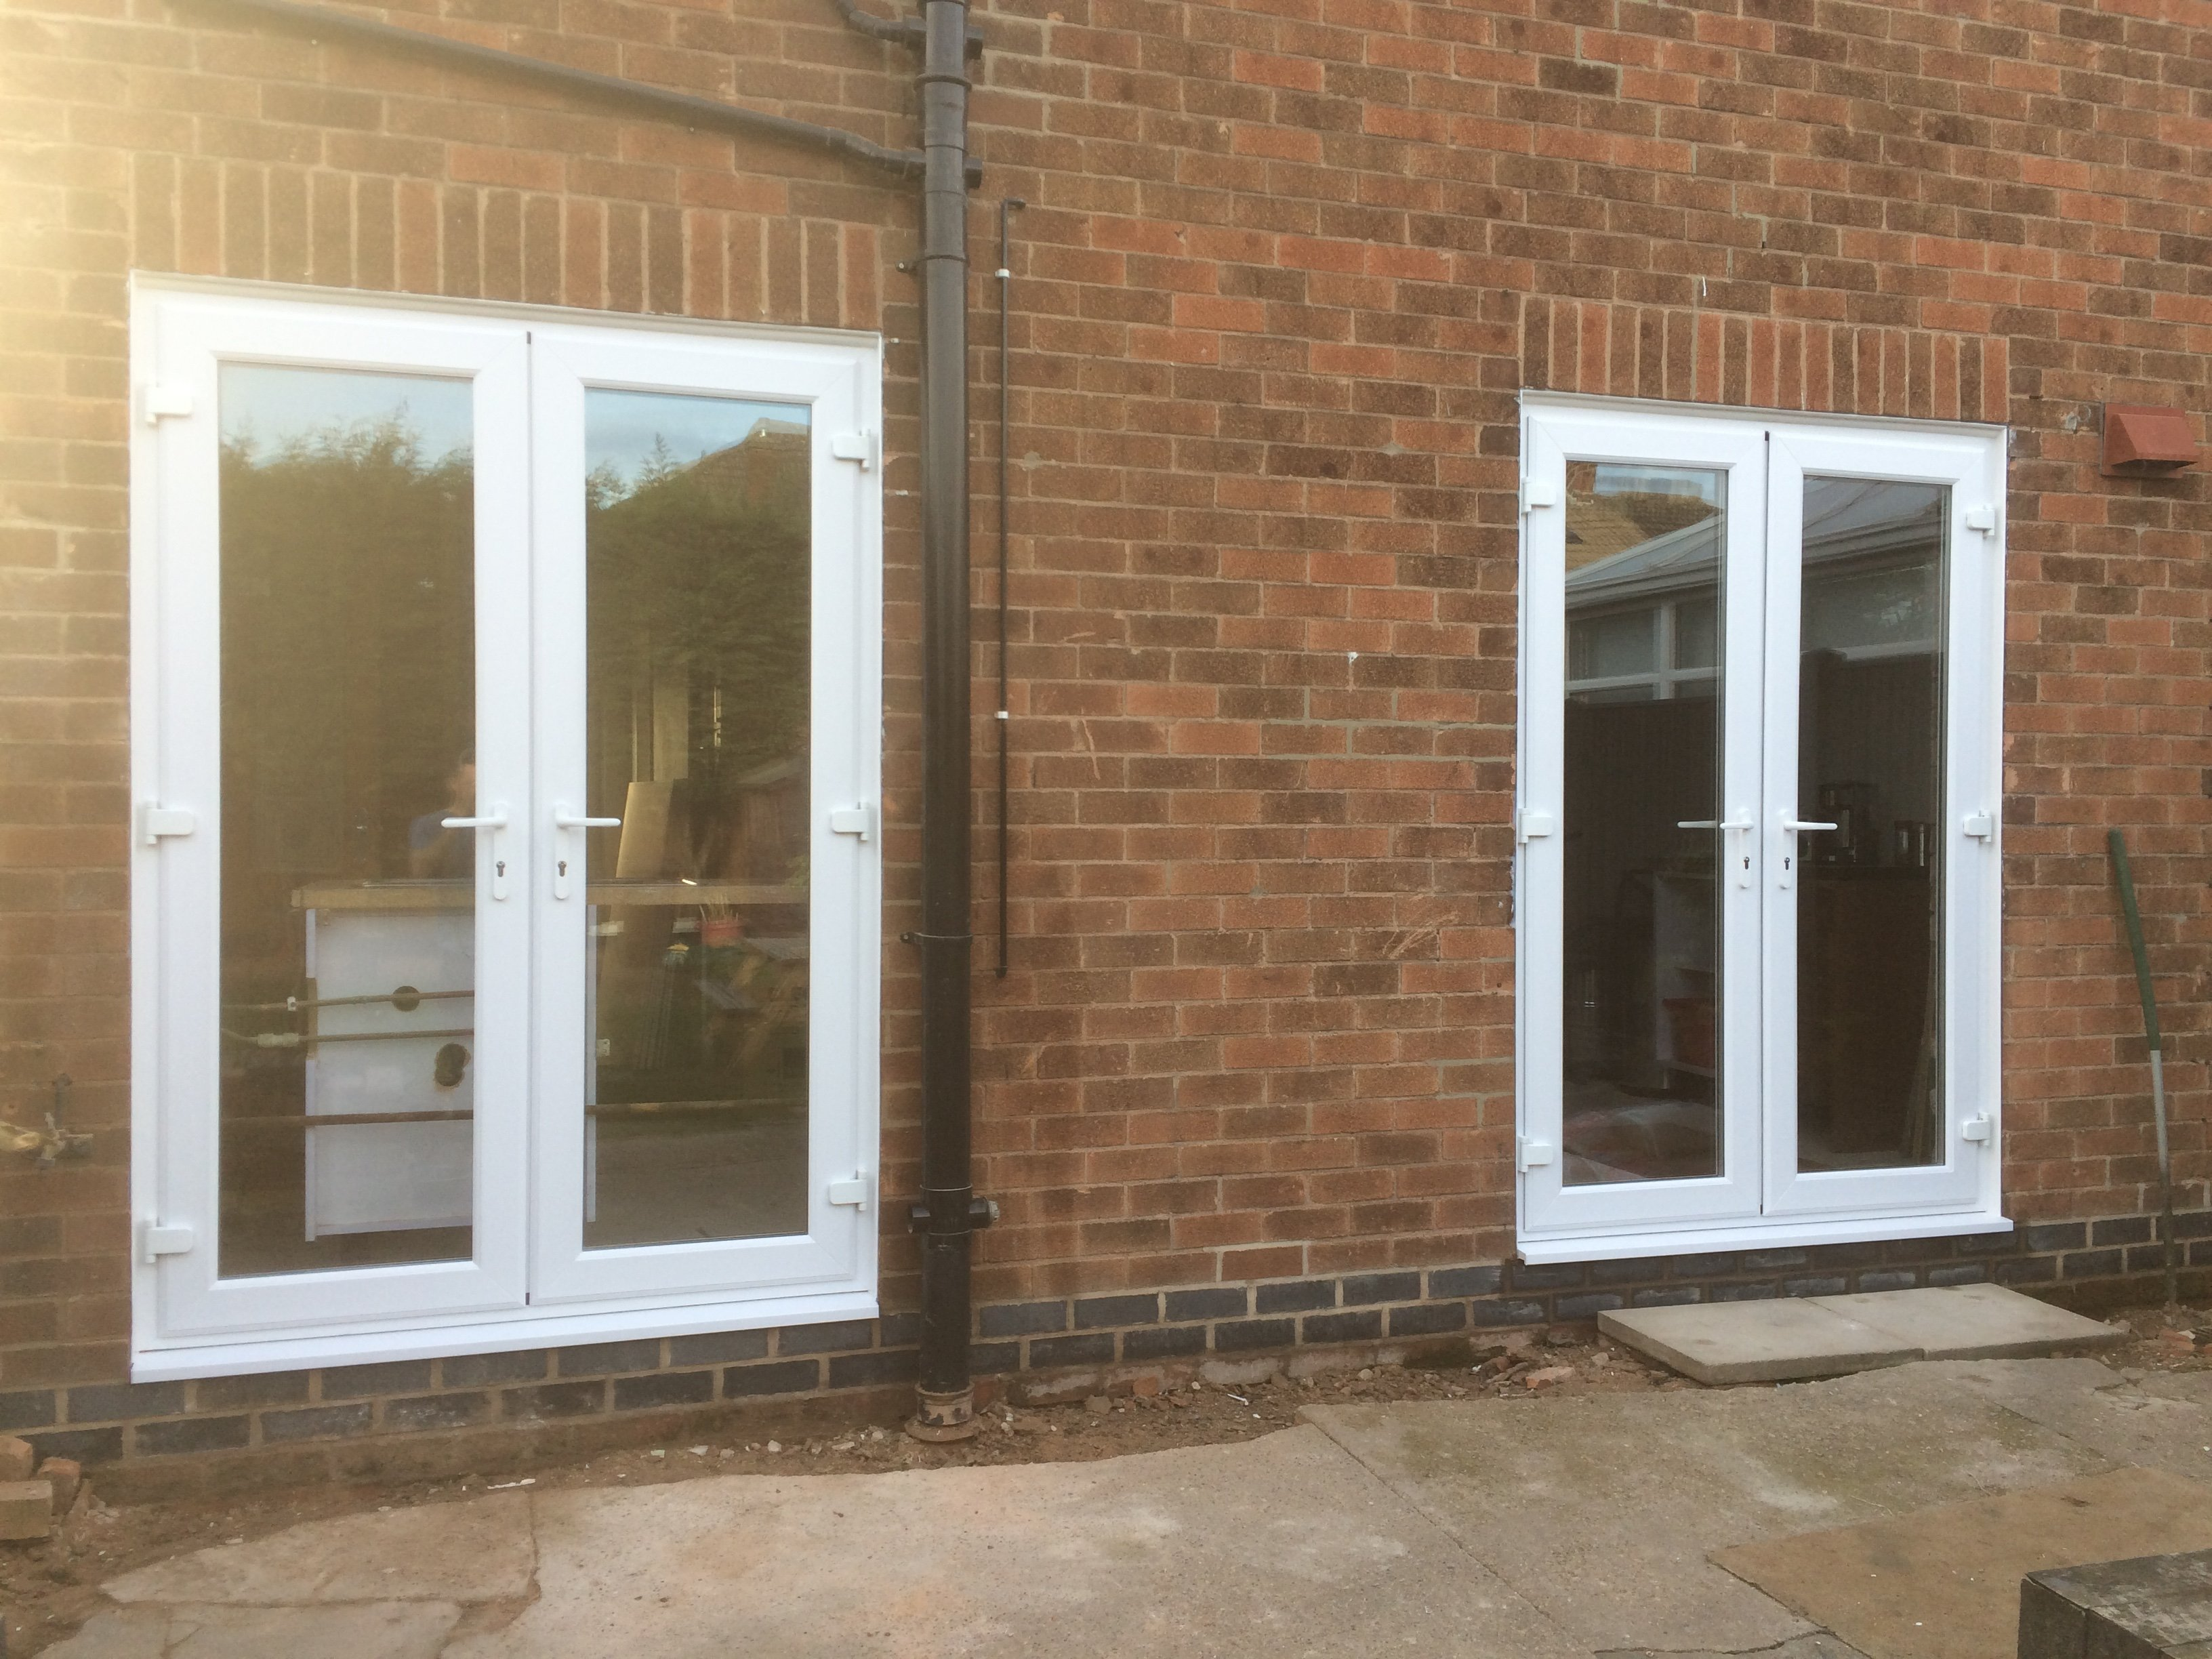 Windows To French Doors After